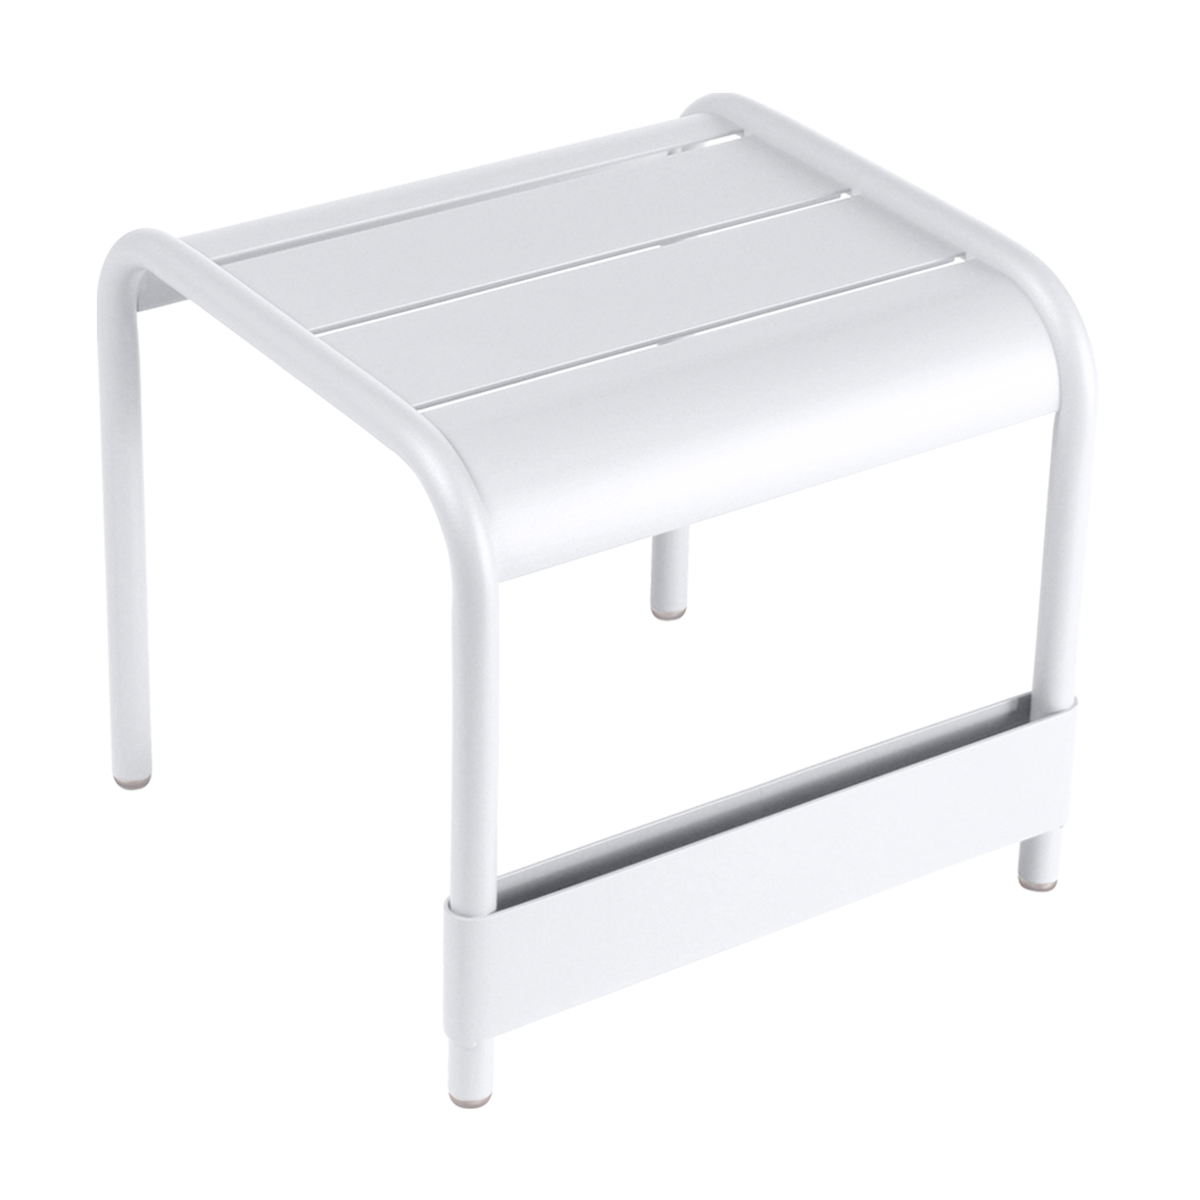 Fermob Luxembourg table/footrest, cotton white from Fermob